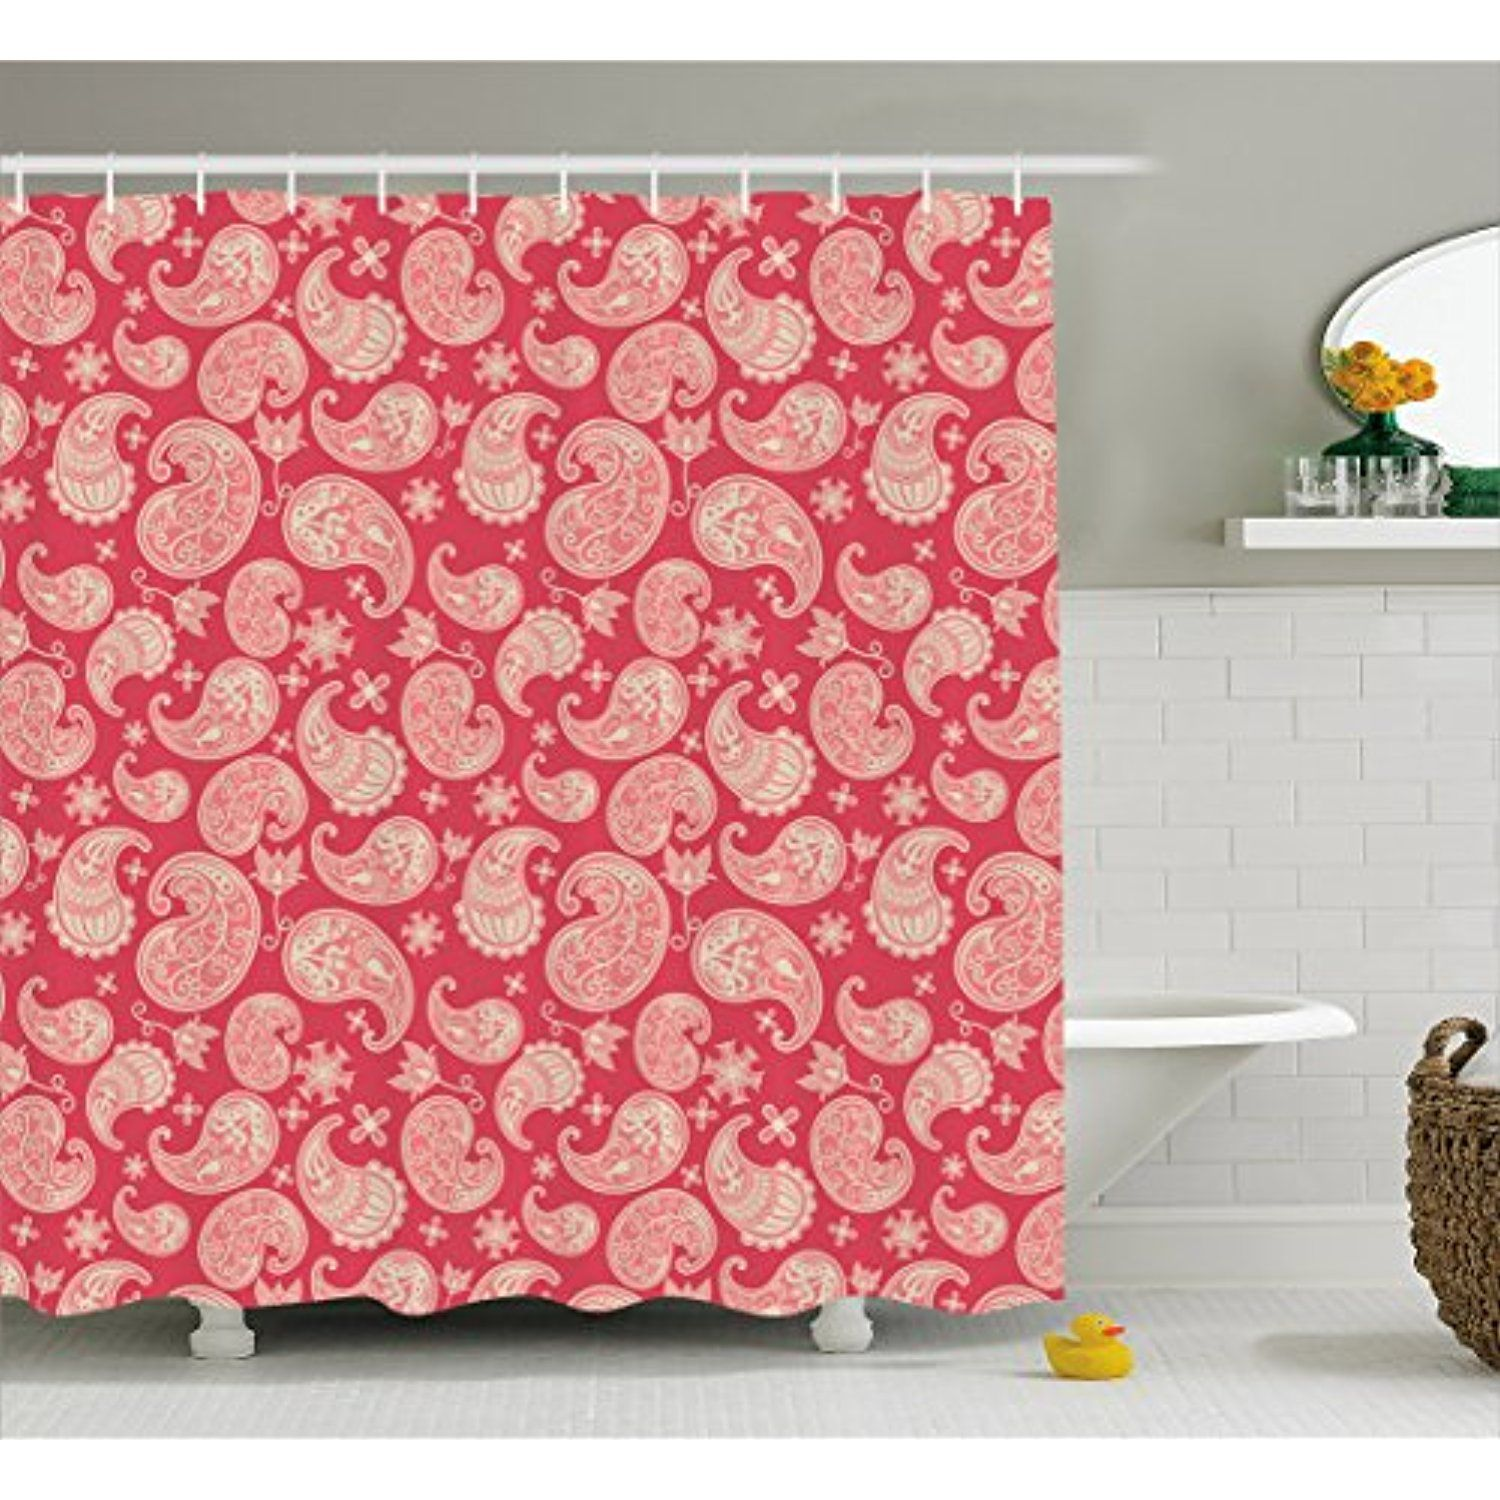 Paisley Shower Curtain By Lunarable Valentines Day Inspired Image